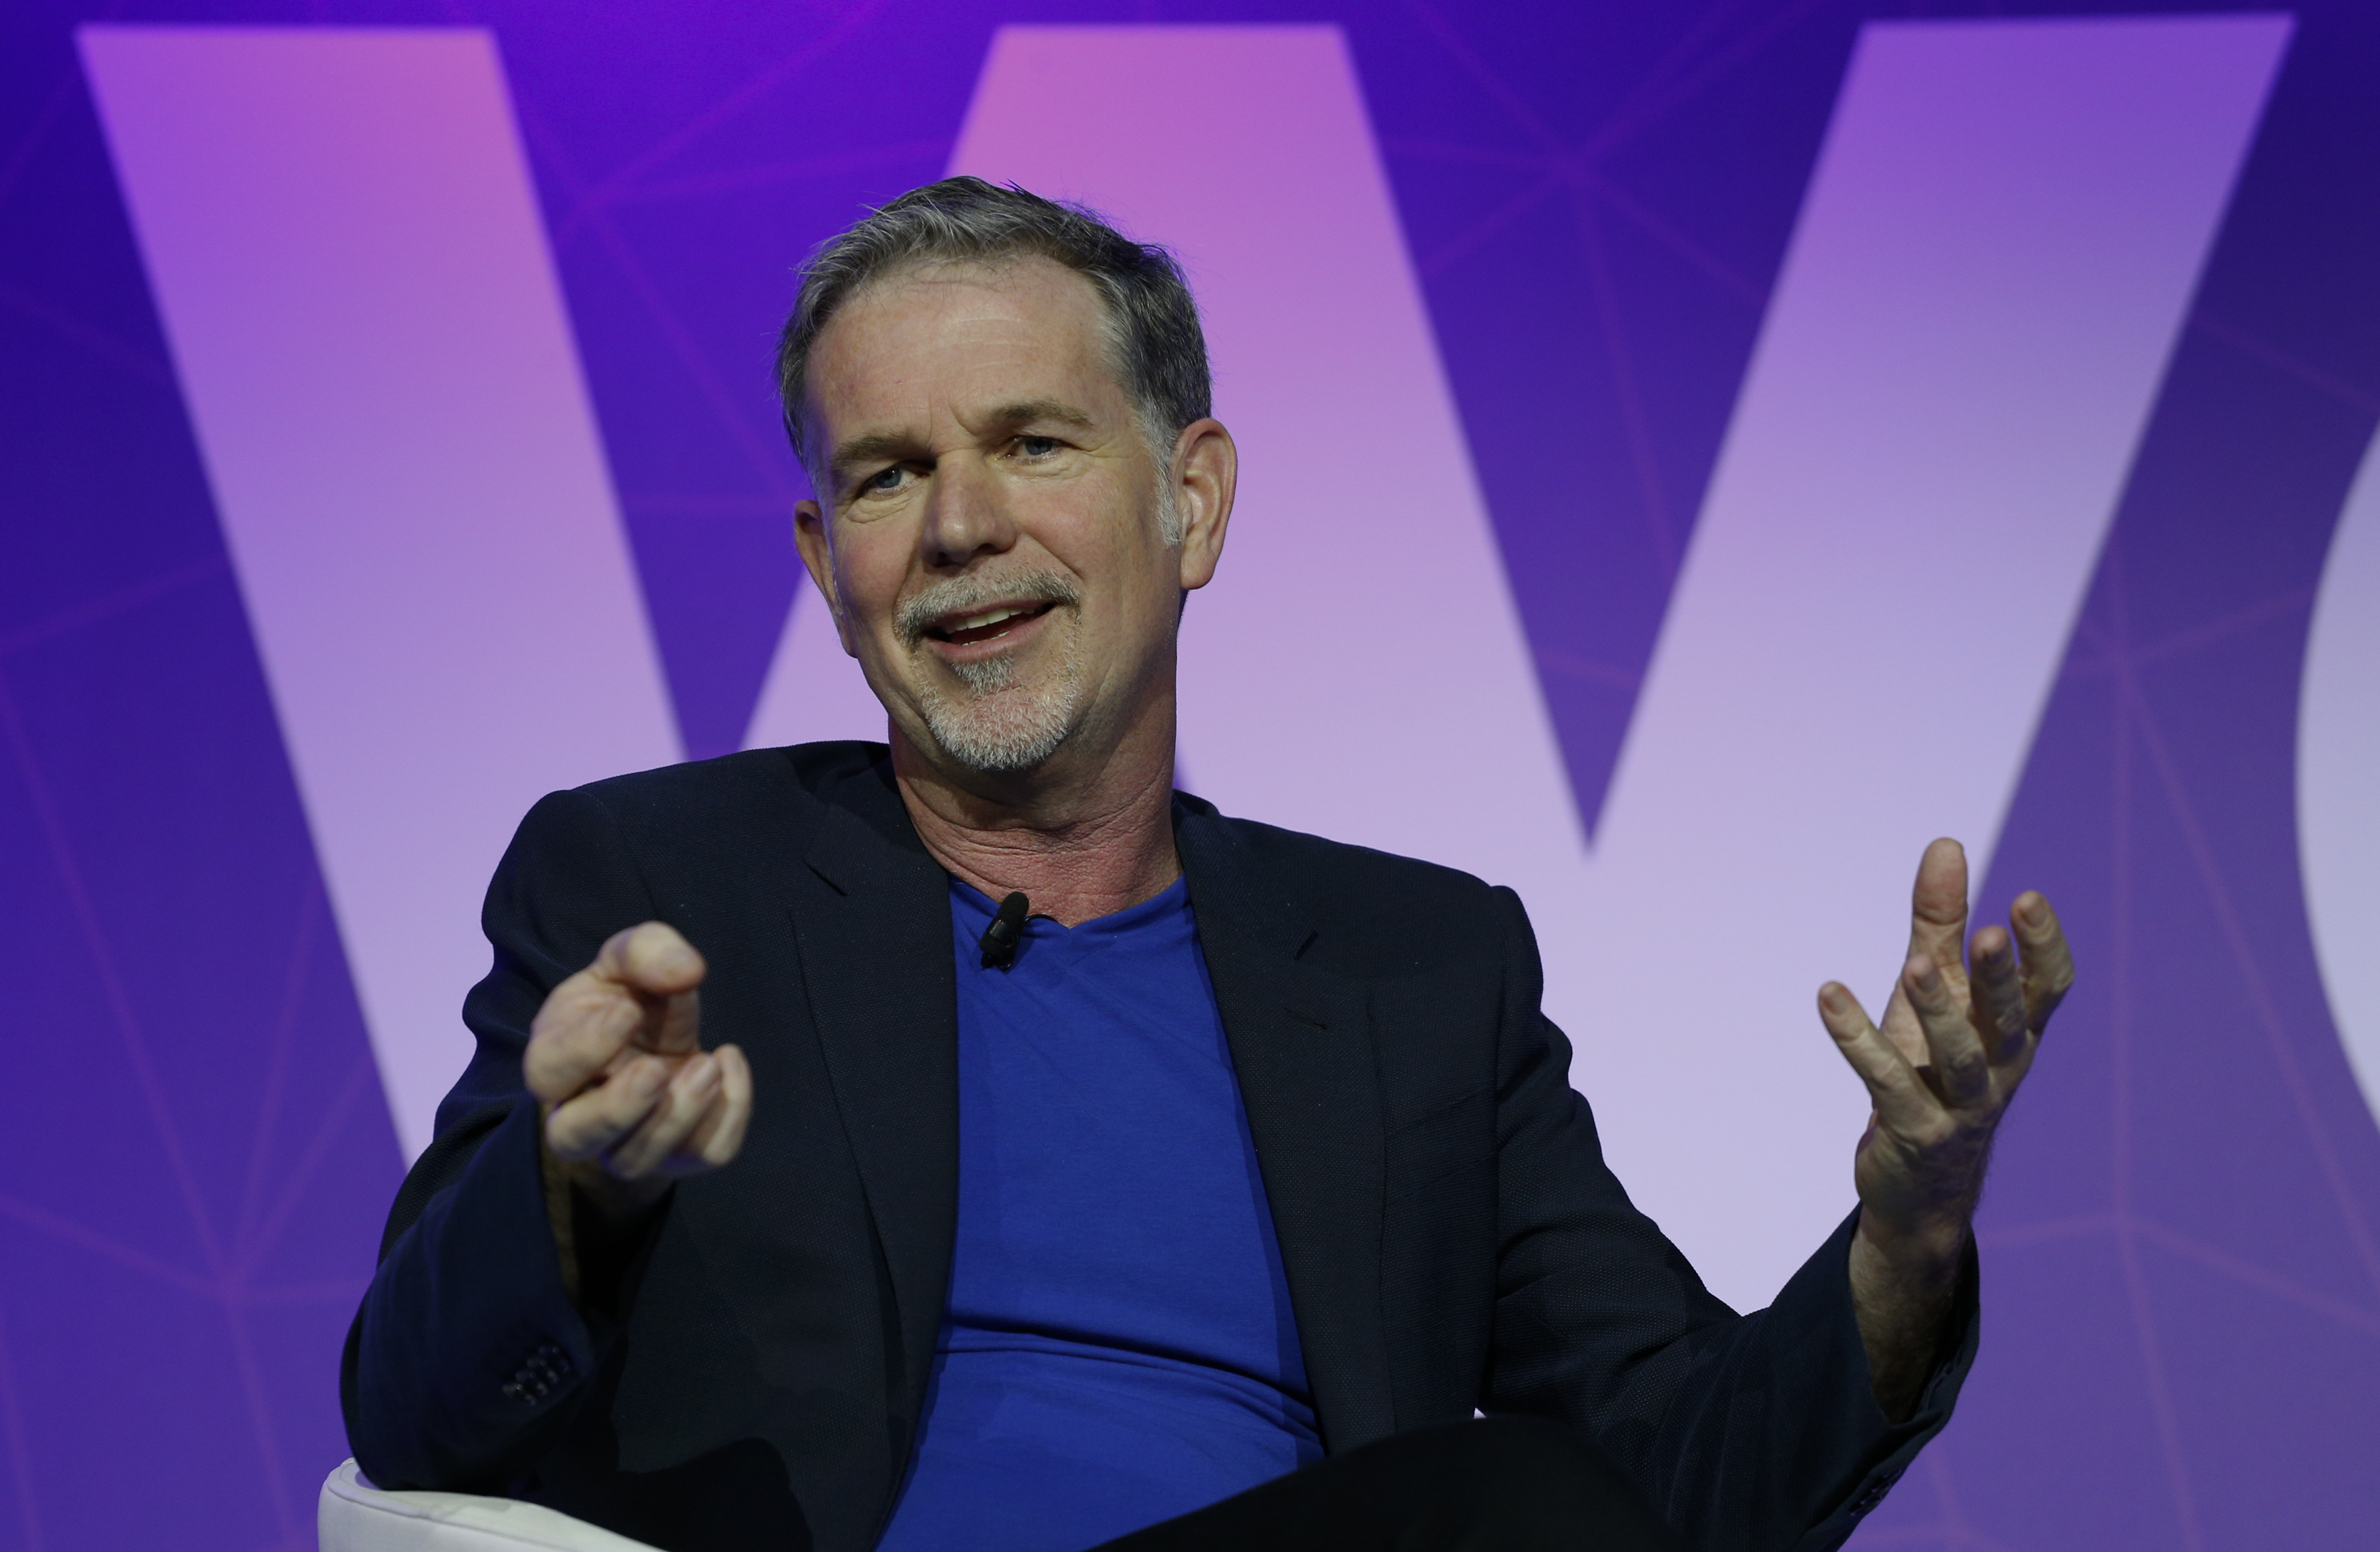 Netflix's CEO Hastings gestures as he delivers his keynote speech during Mobile World Congress in Barcelona